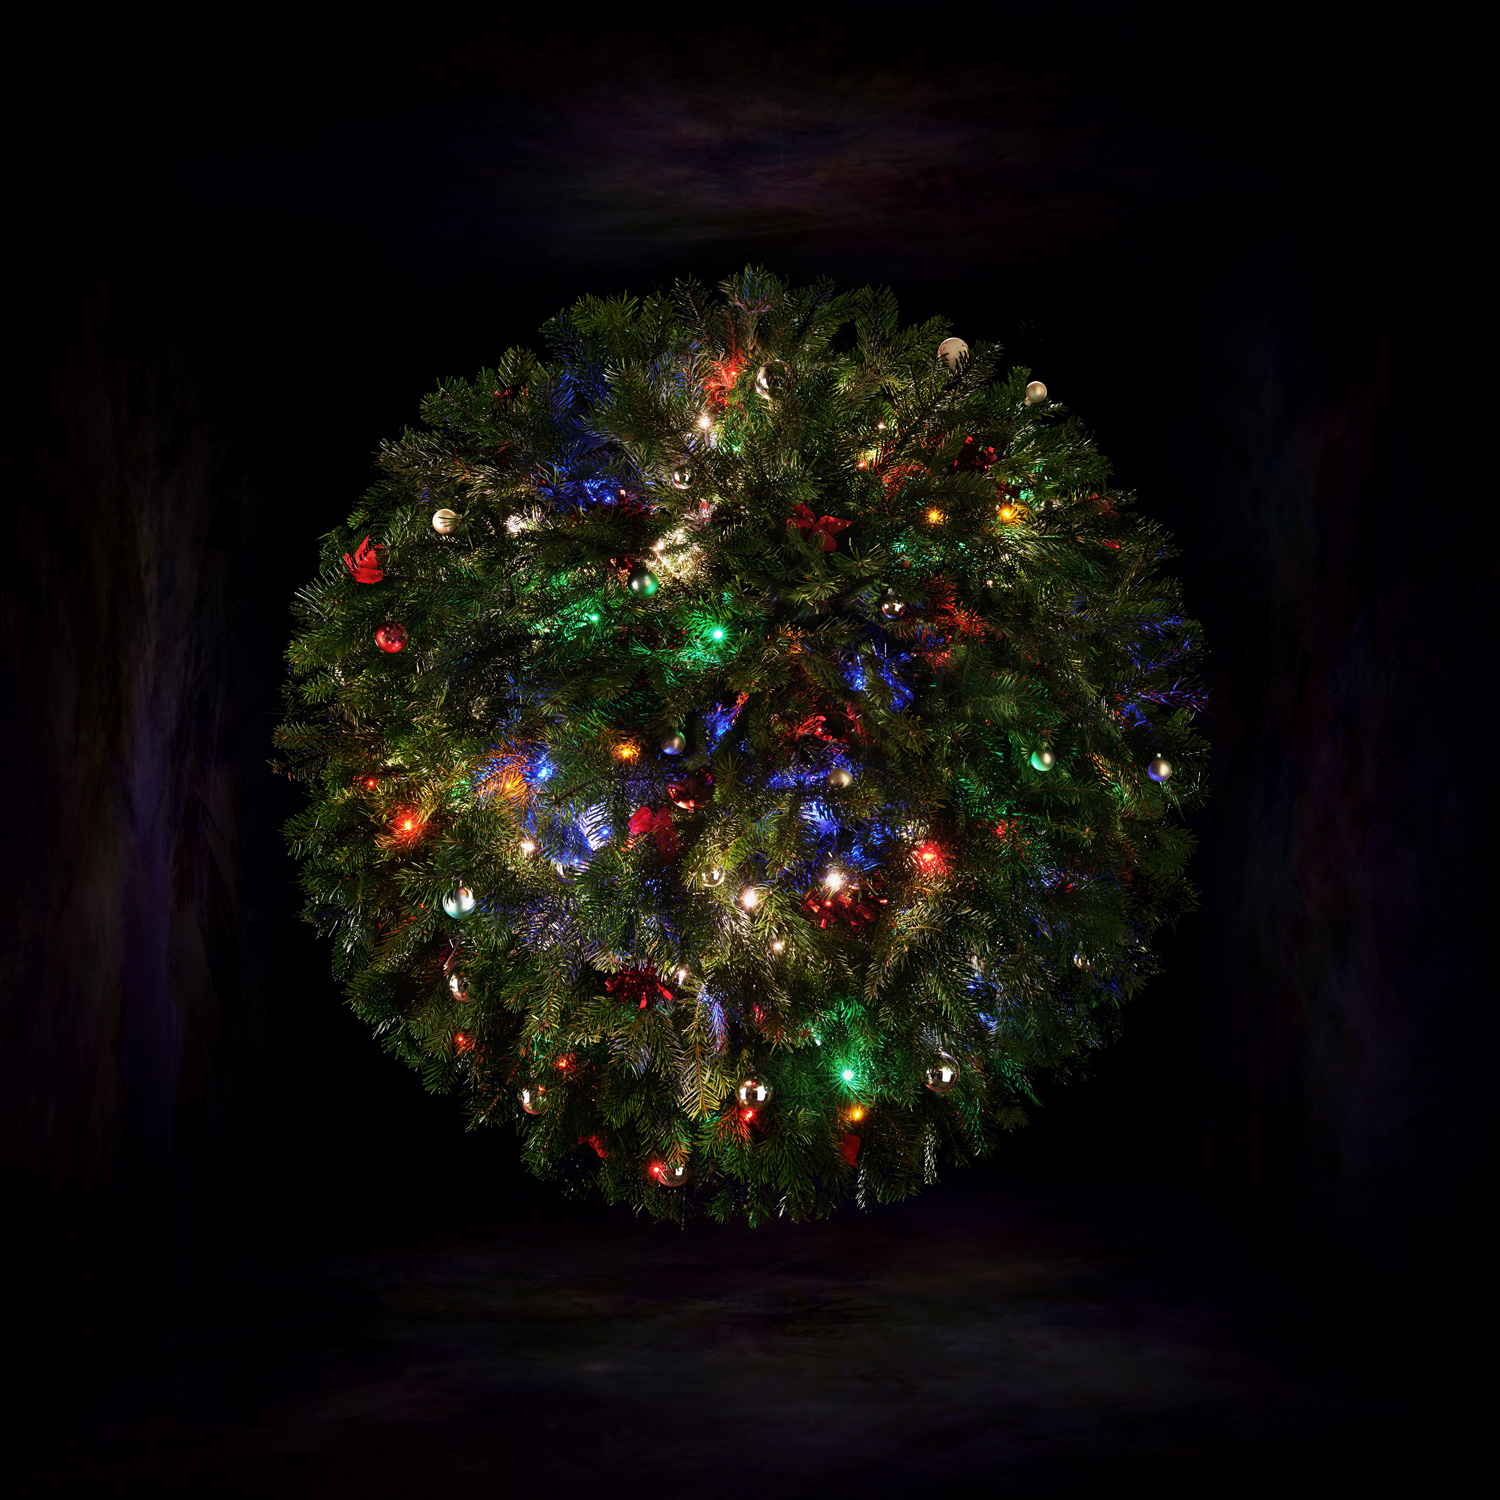 BMB_ChristmasTree-Comp_V3b-s